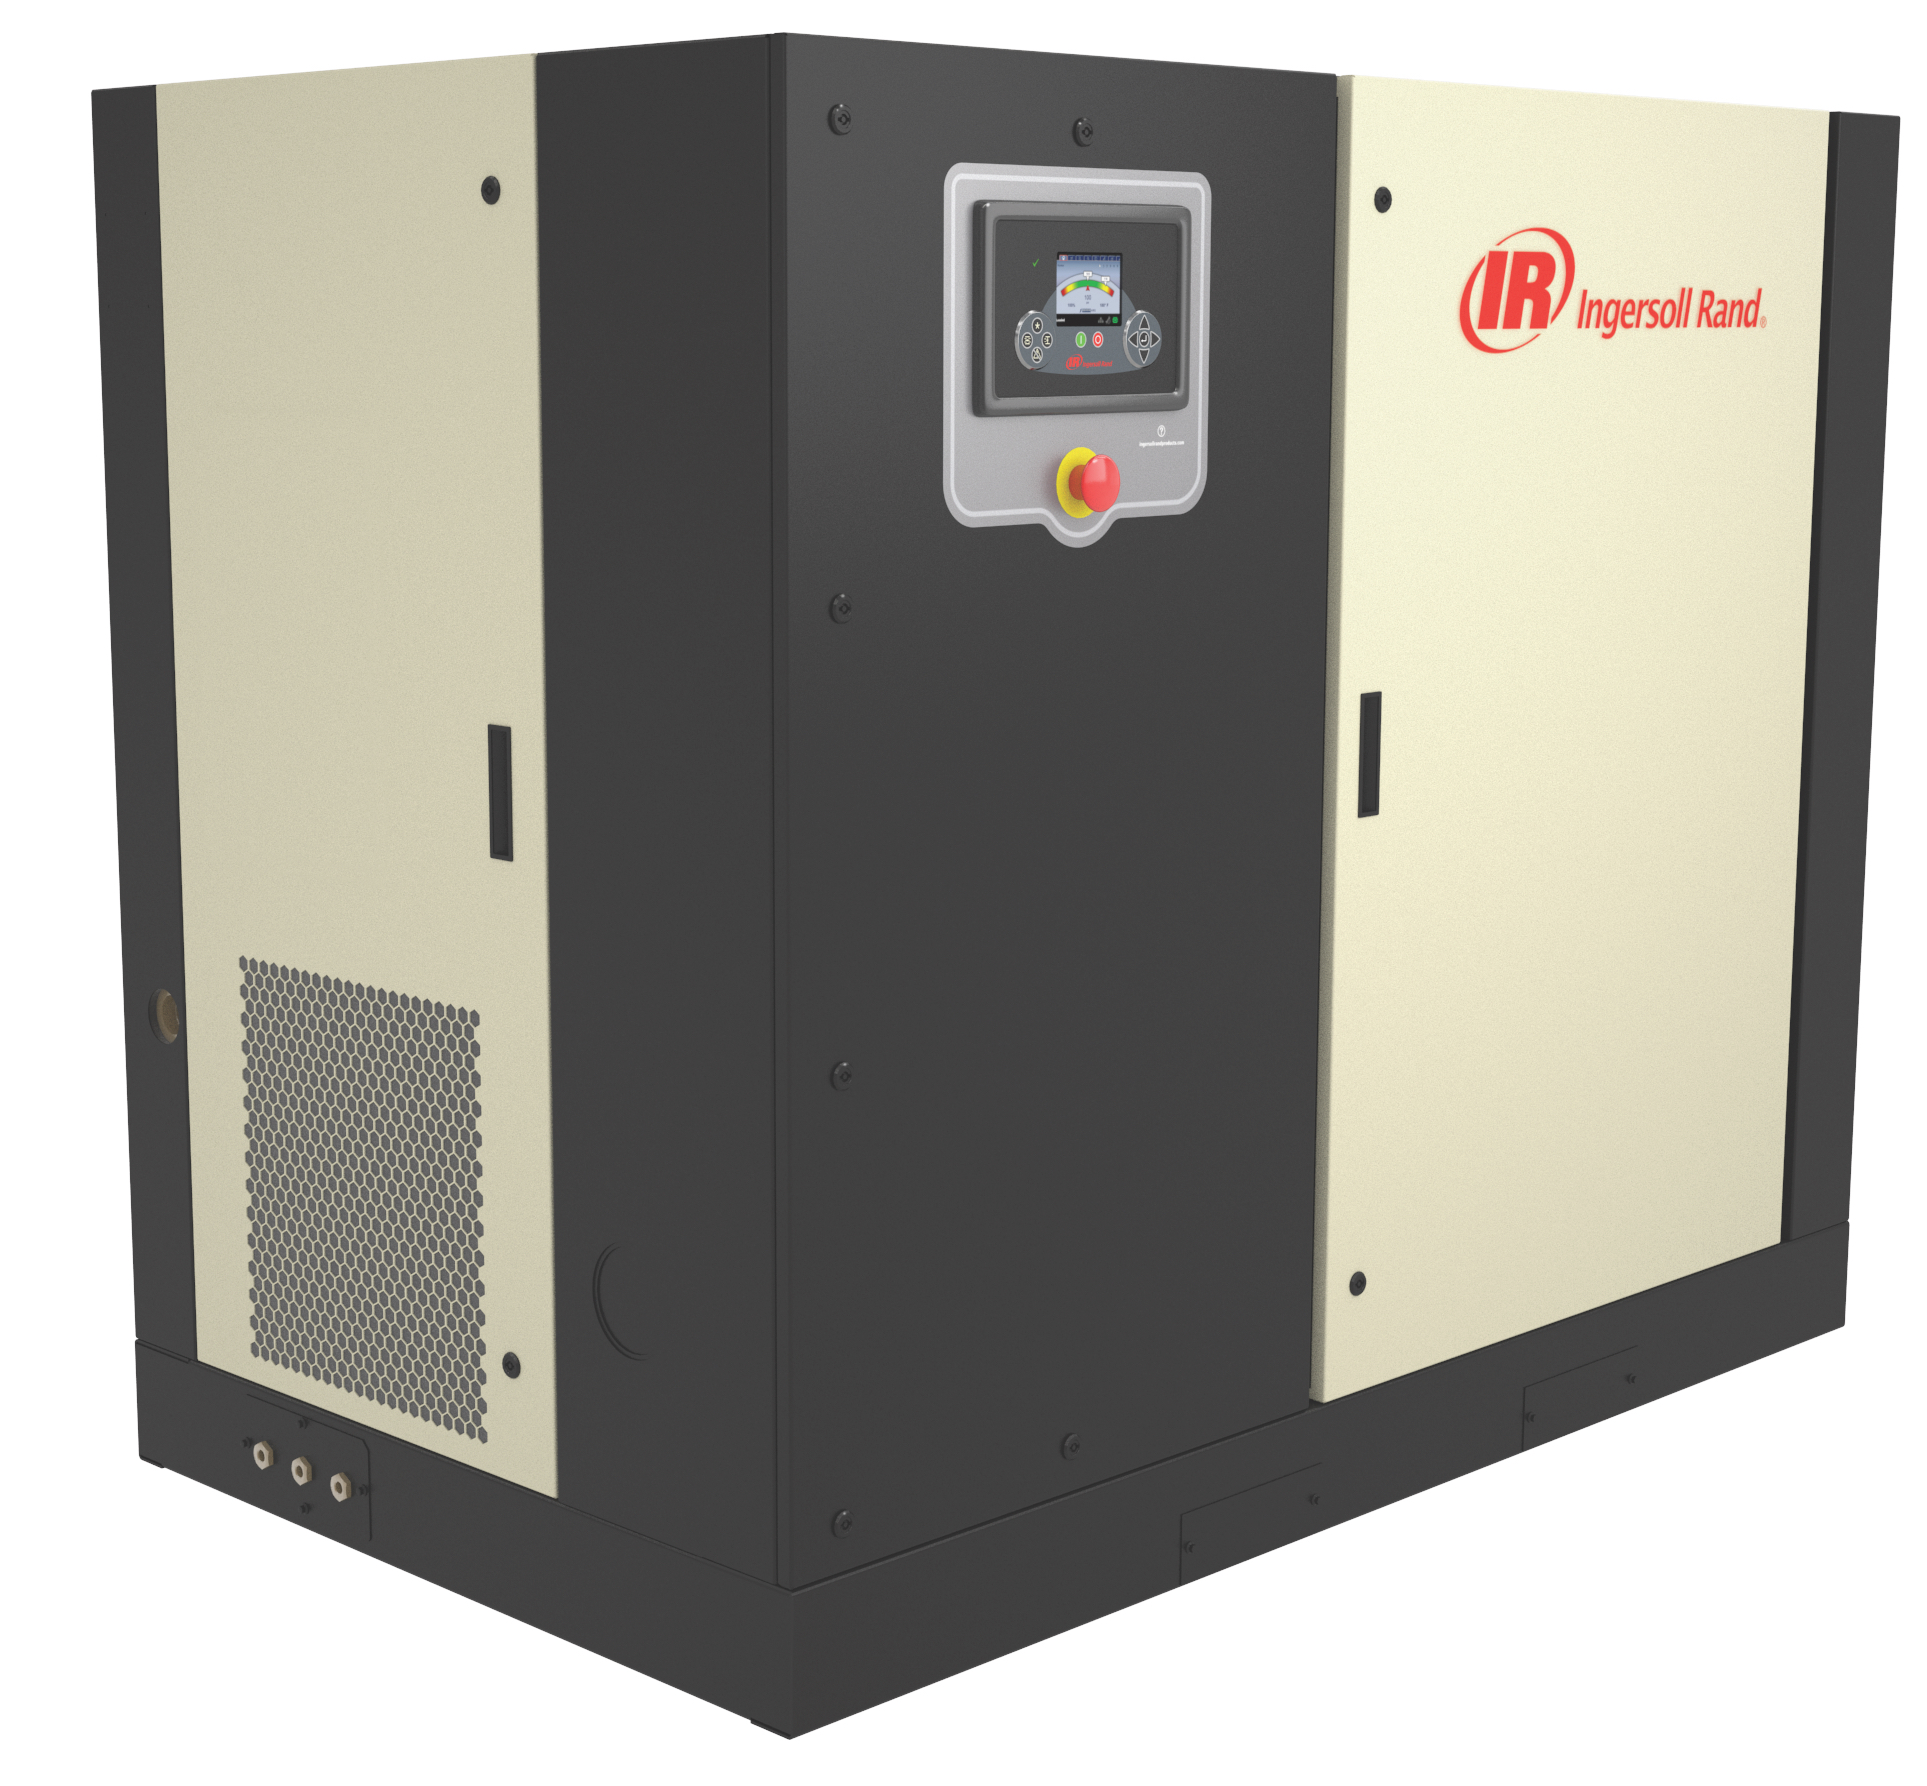 Ingersoll Rand Rs30 And Rs37 Air Compressors Deliver Up